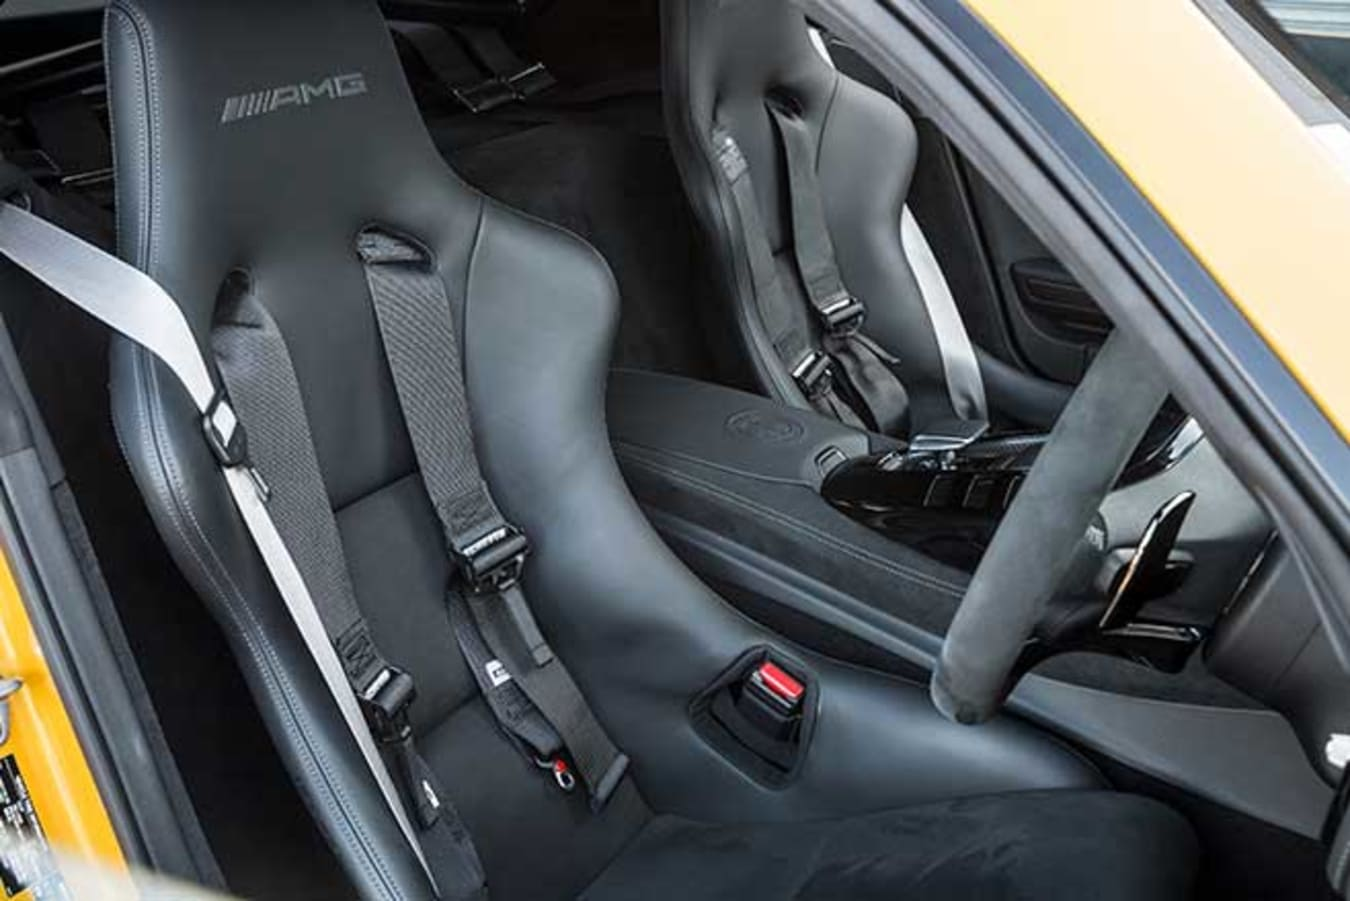 AMG Performance seats with four-point harnesses.